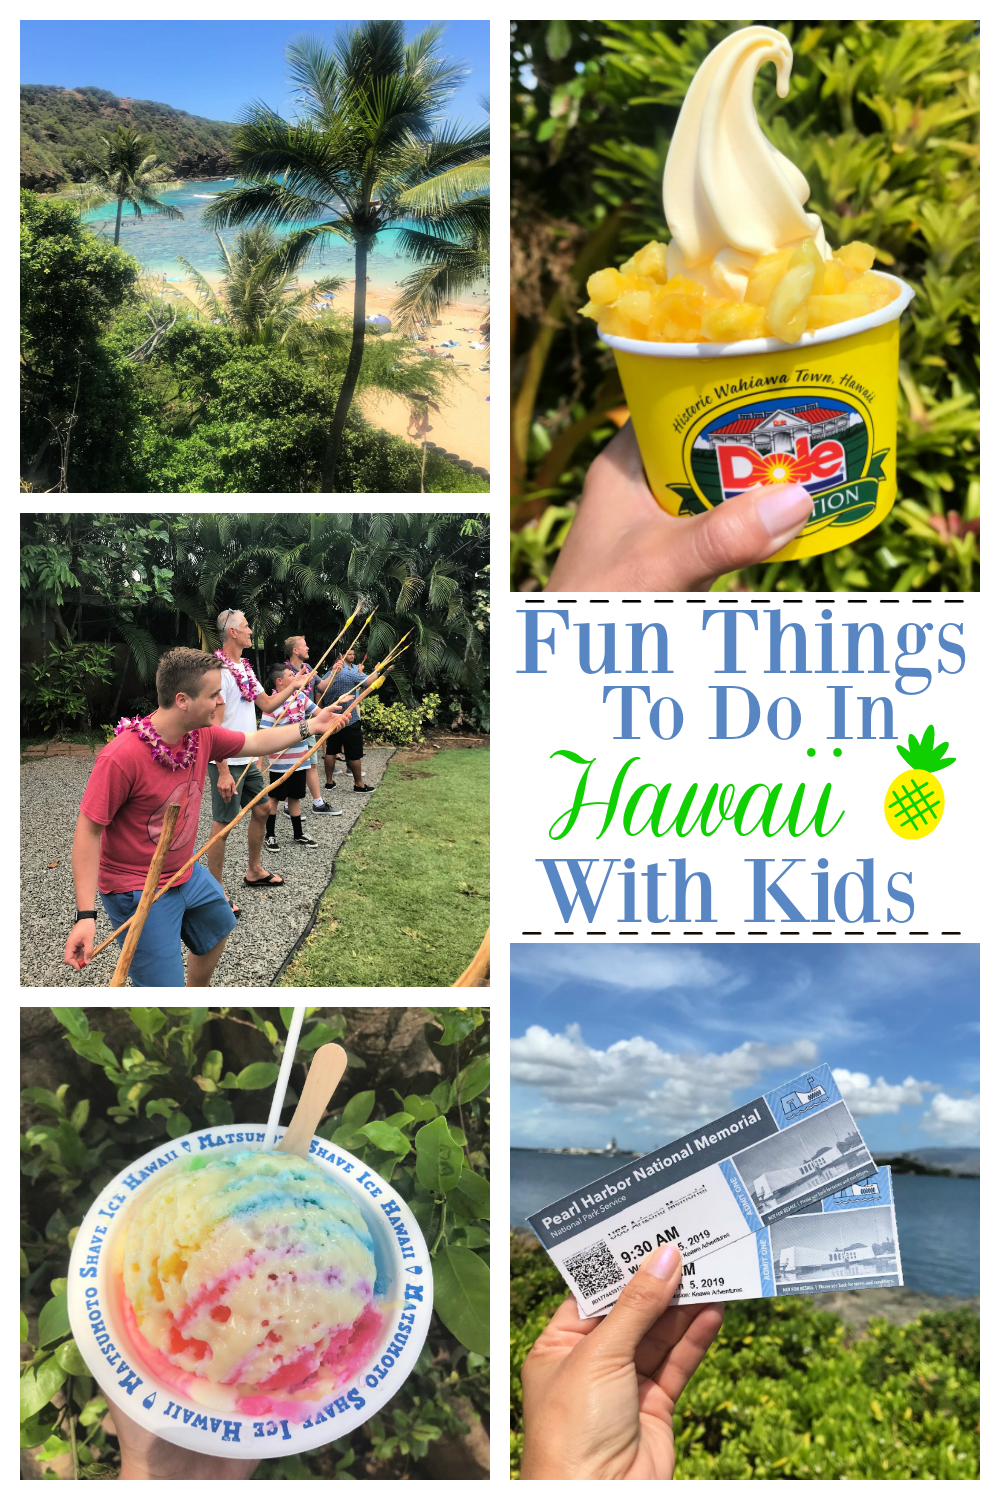 Fun Things to do in Oahu With Kids. We have lots of fun ideas to make your next Hawaiian vacations amazing! Lots of ideas for the whole family. #hawaii #Hawaiianvacation #vacations #travel